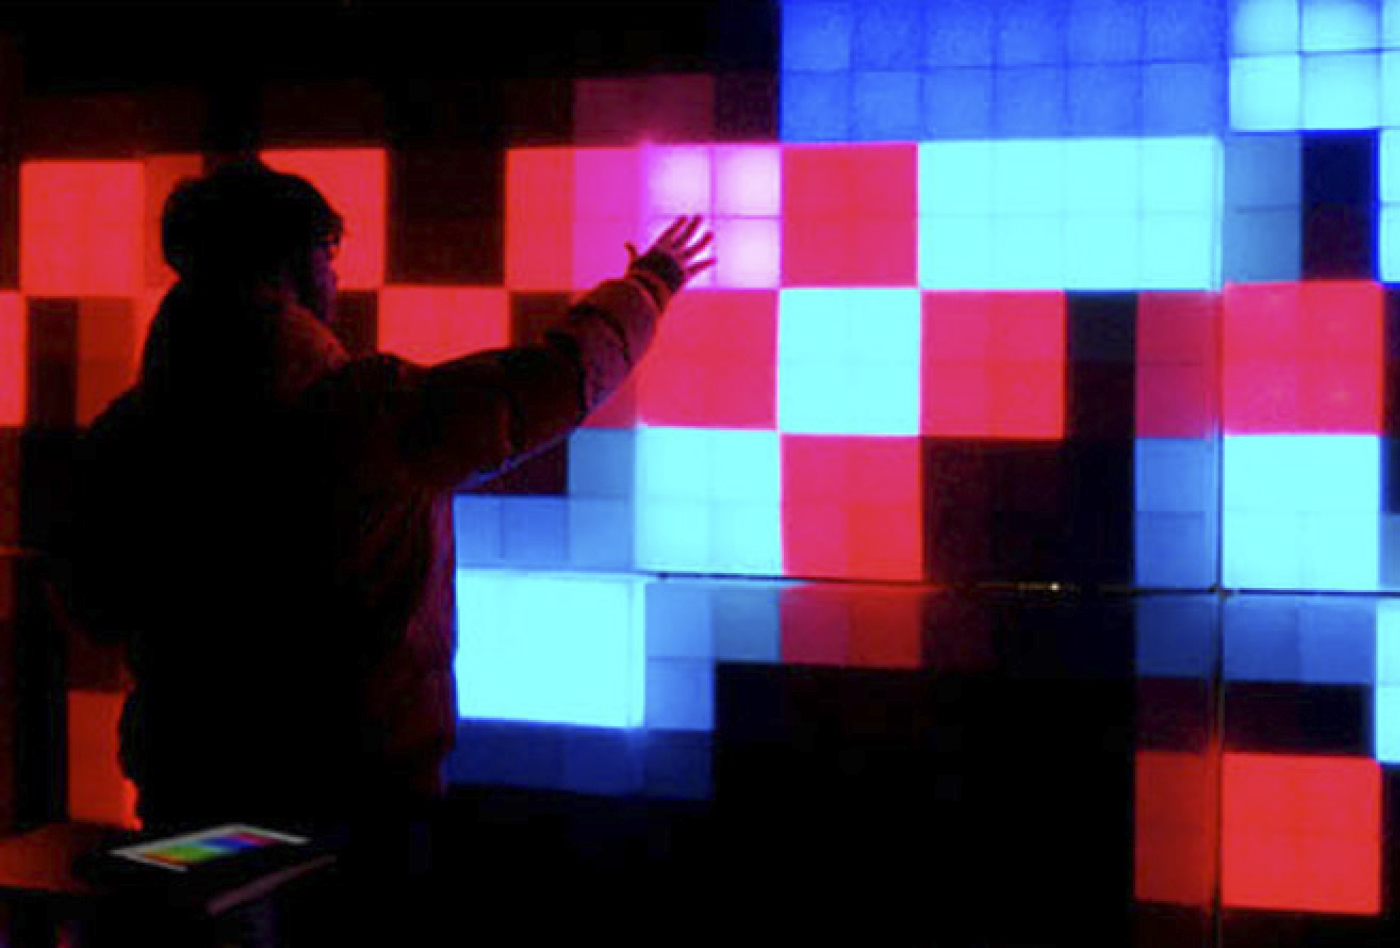 Big LED-wall in public space